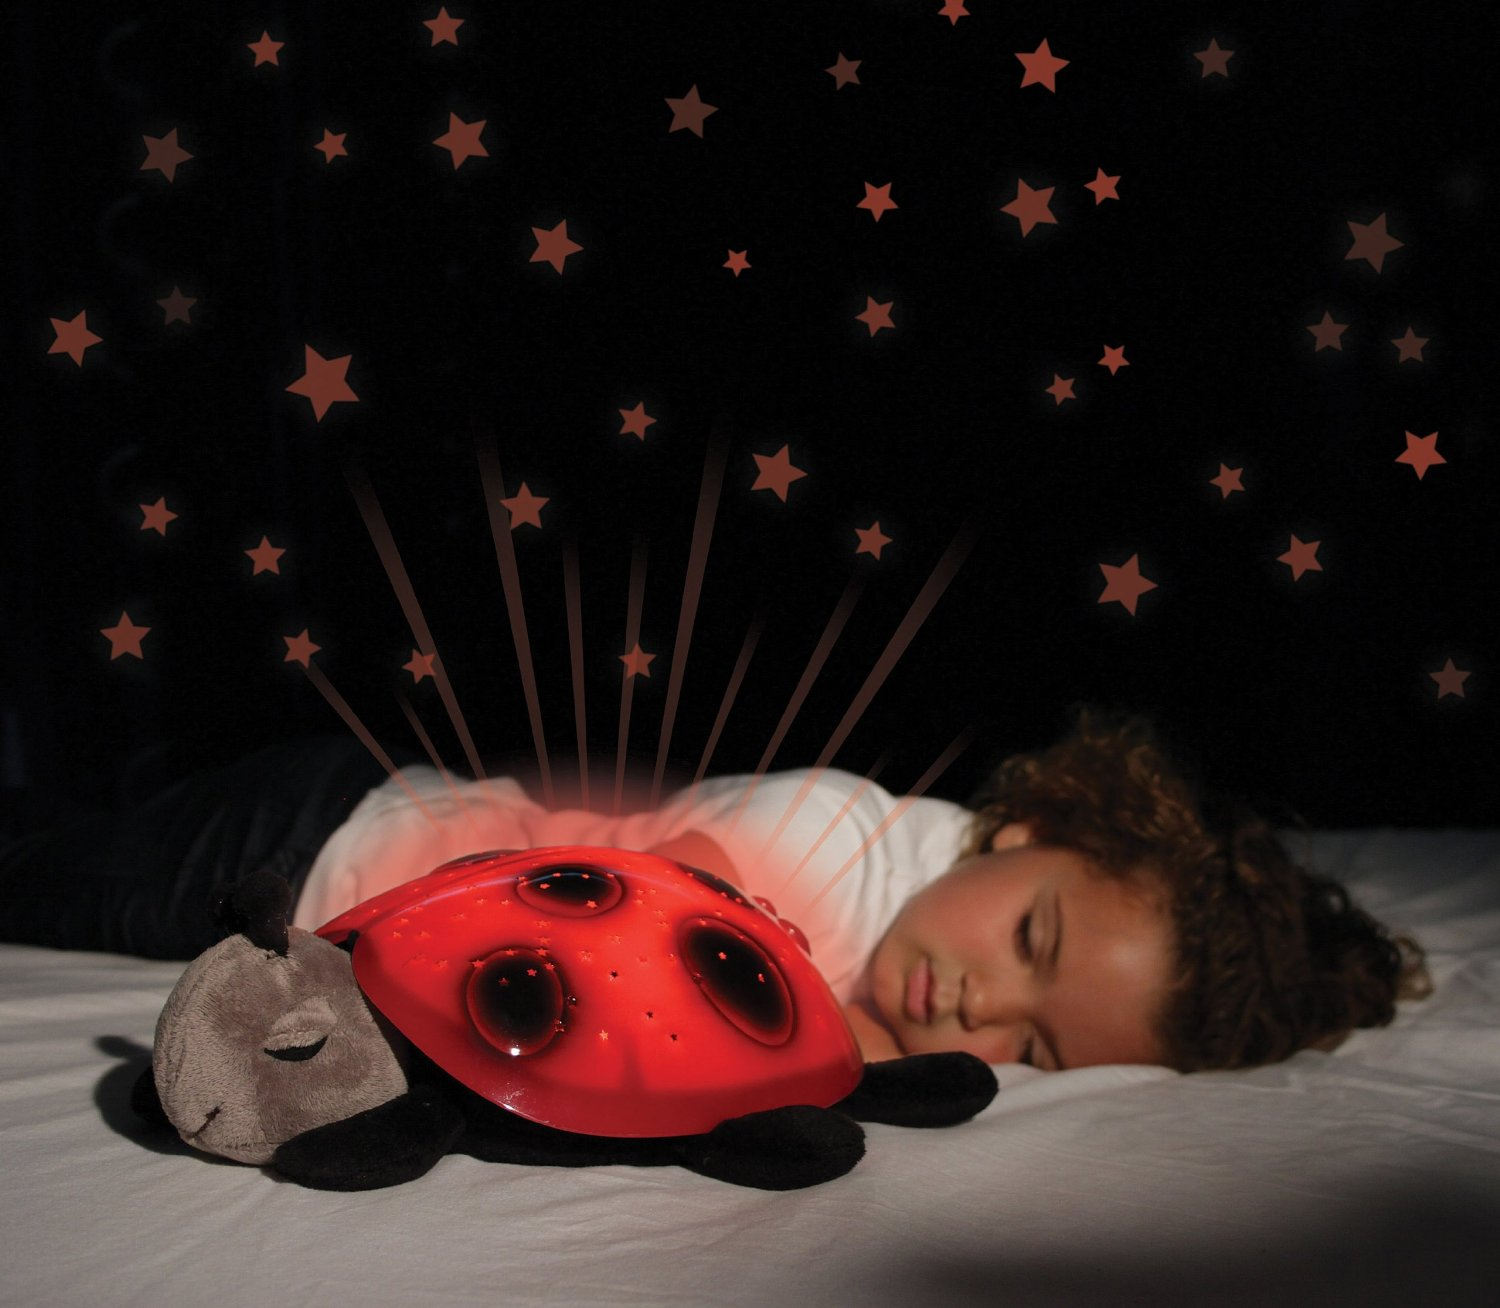 Lady Bug Night Lamp Projecting Stars